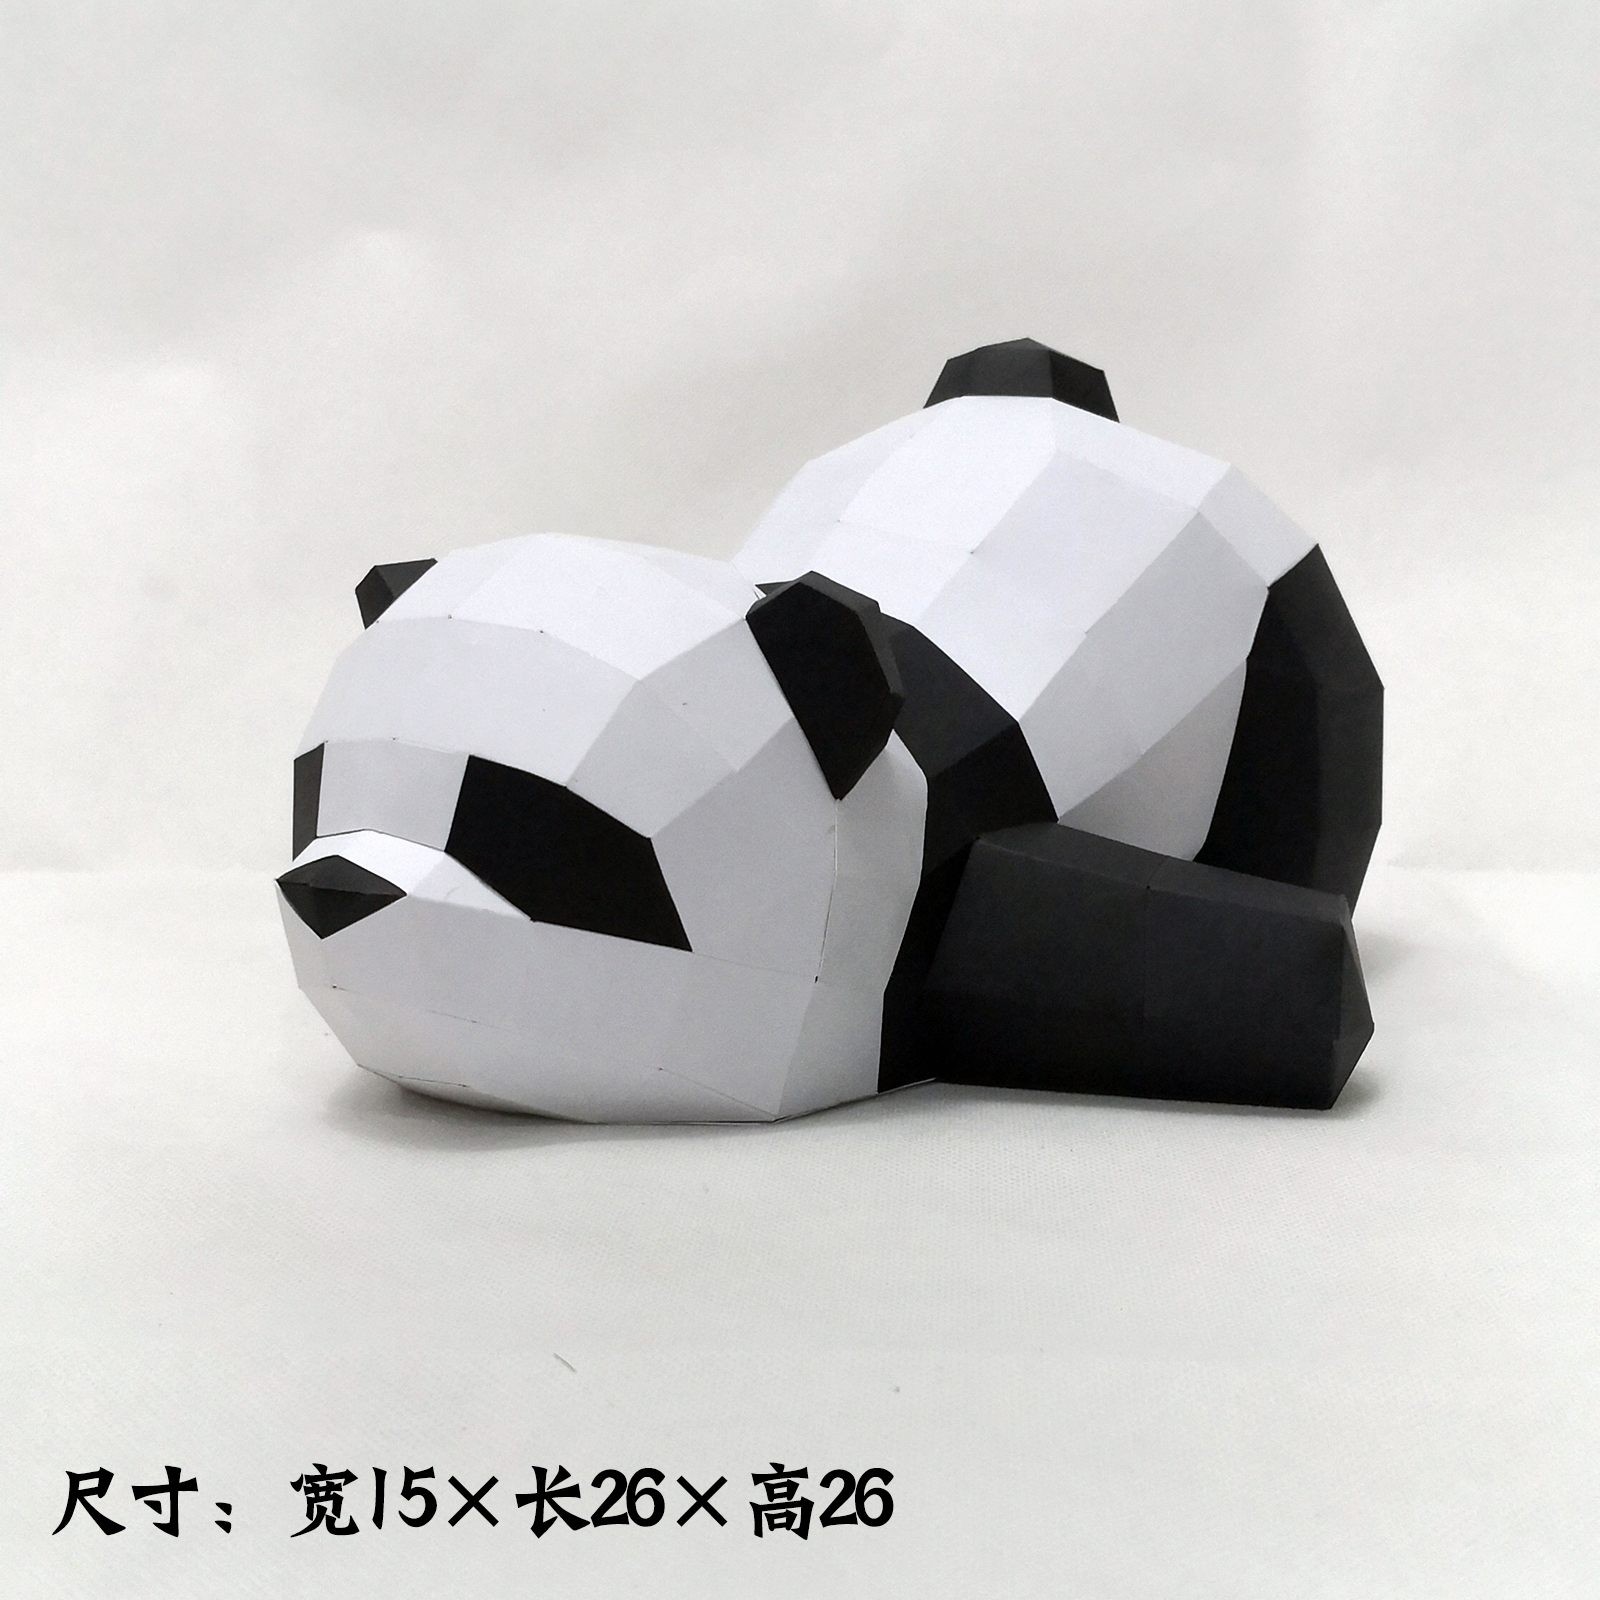 2020 Cute Animals 3D Panda Paper DIY Model Kits Puzzle Toys Educational Birthday Gift For Kids